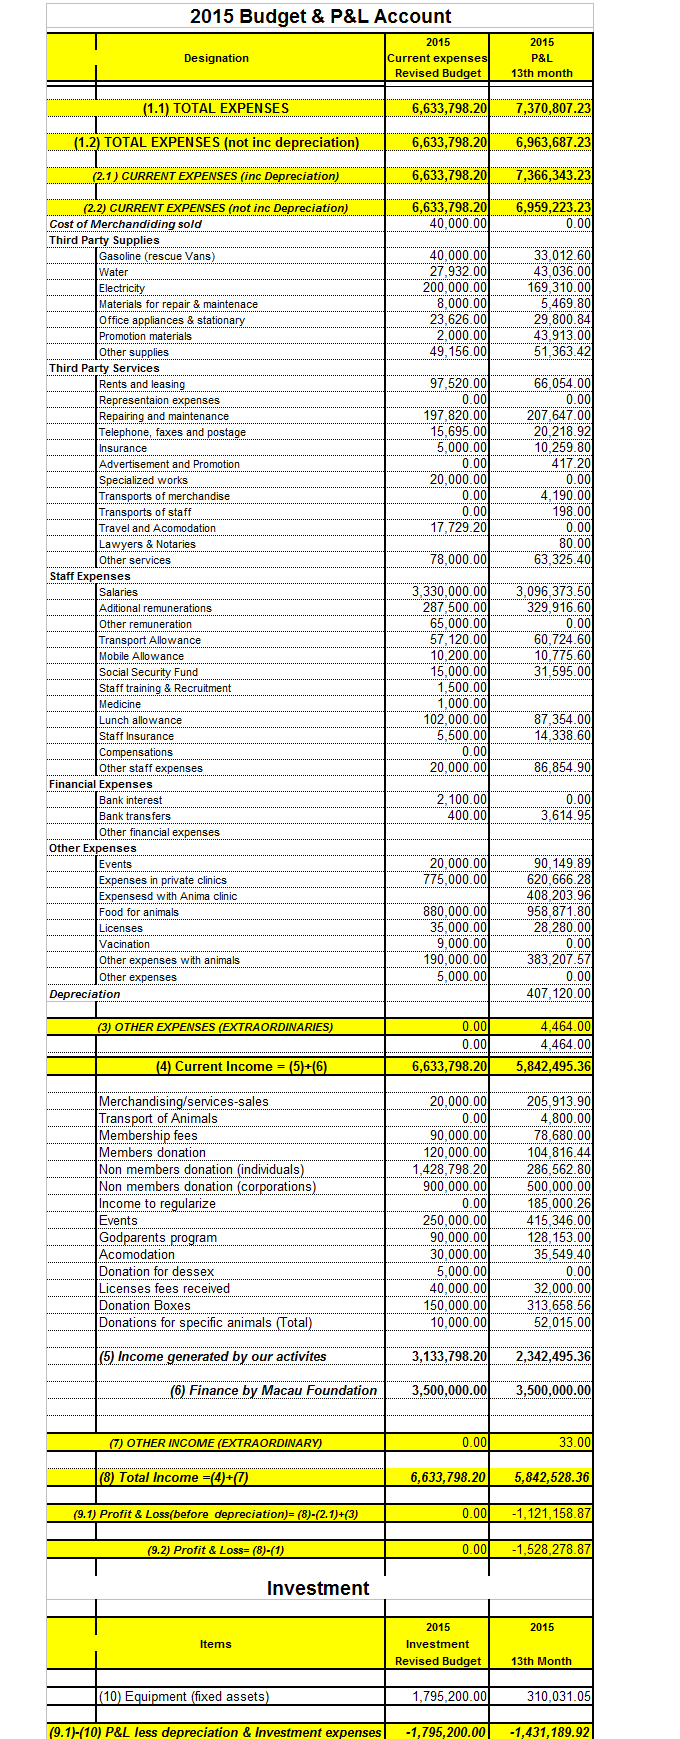 Budget and P&L 2015 (4)